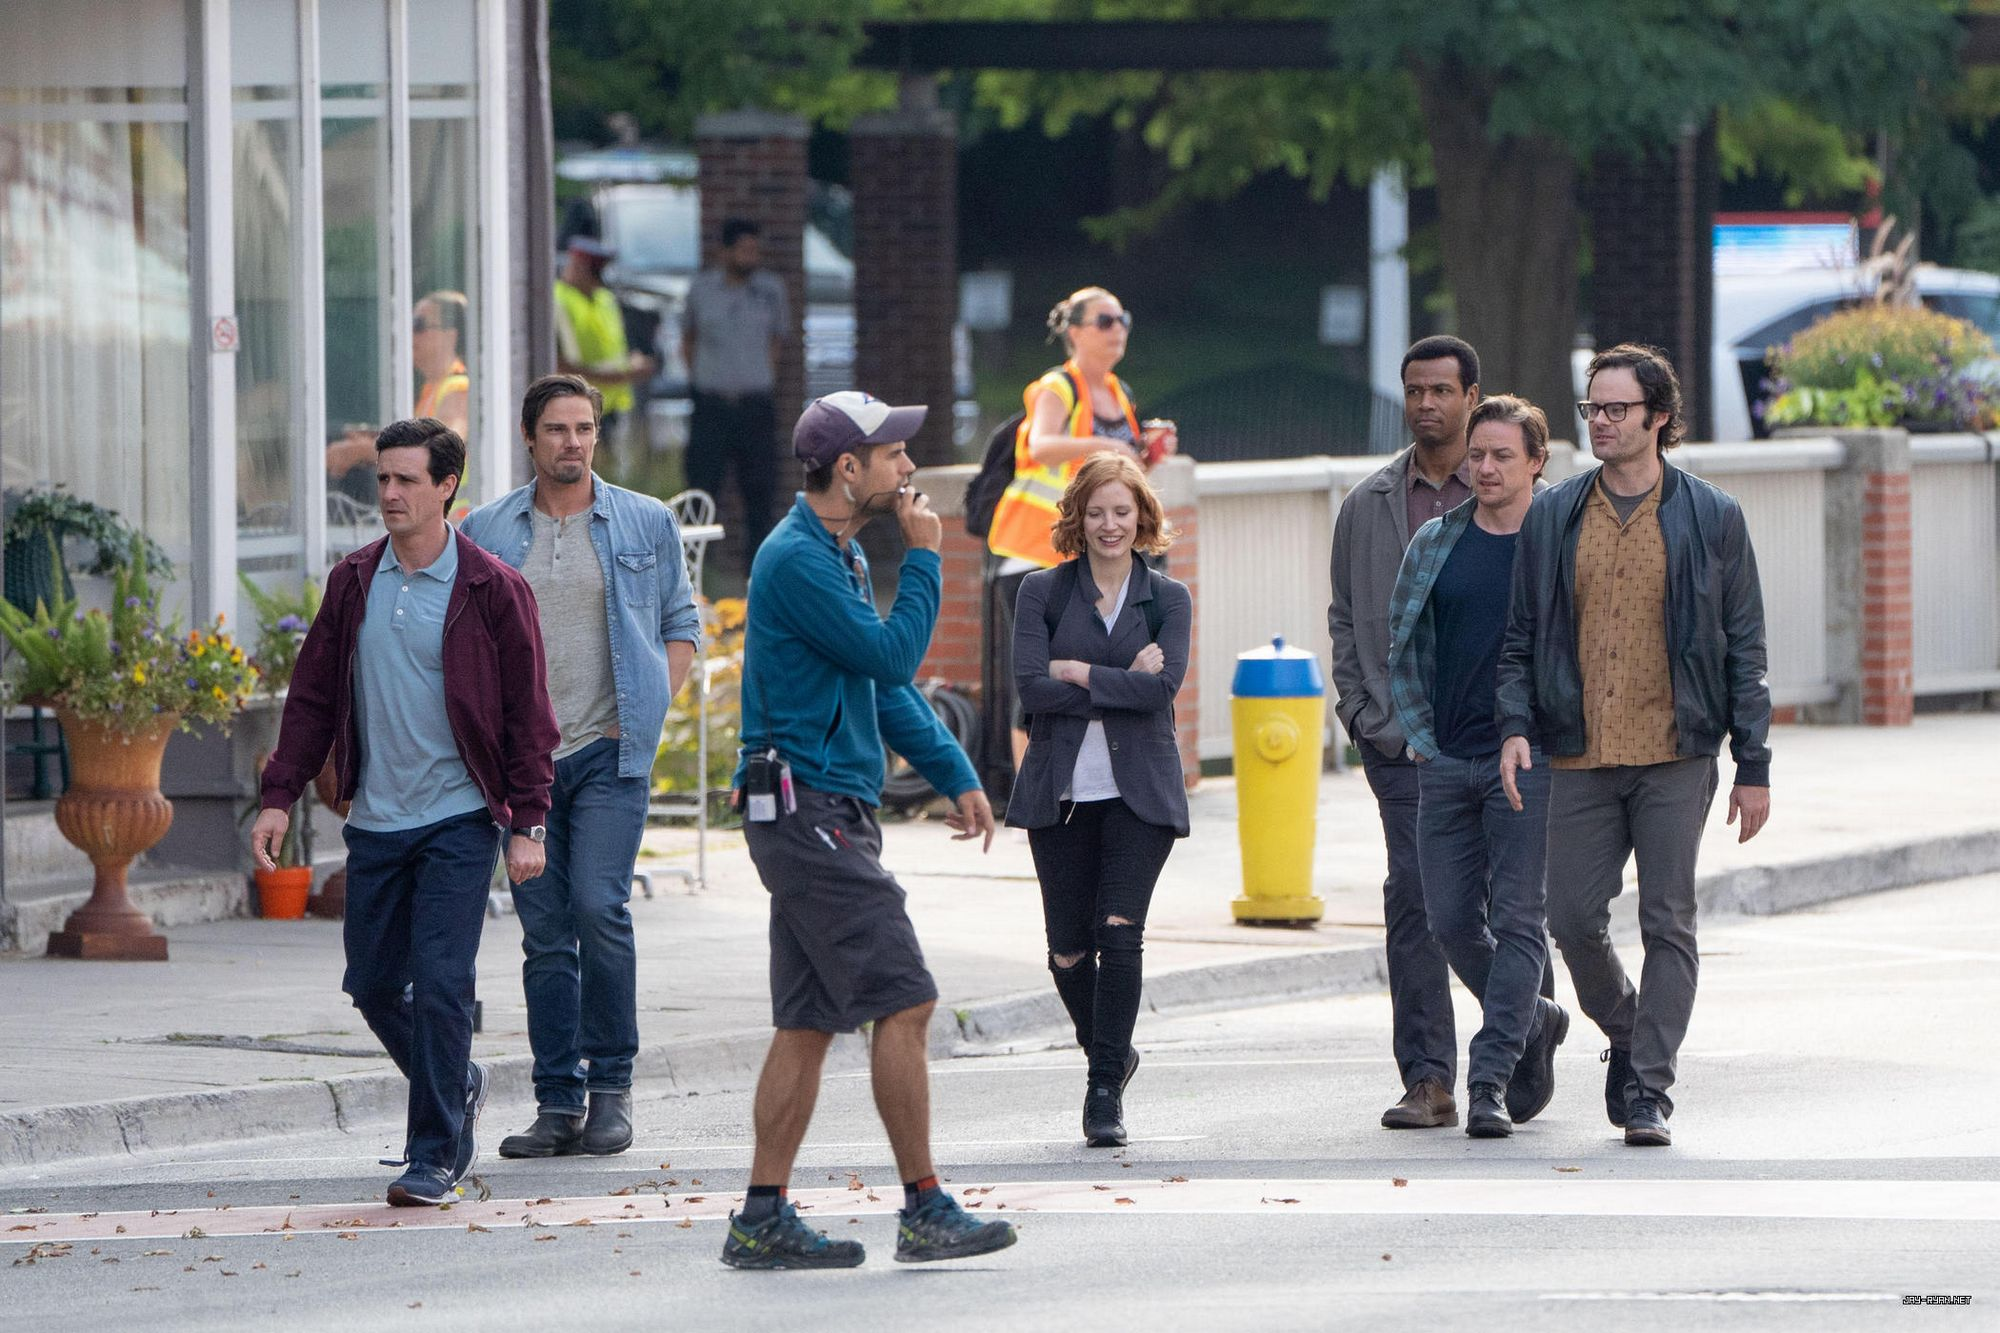 Photos: 'IT Chapter Two' – On the Set (July 30) + Behind the Scenes